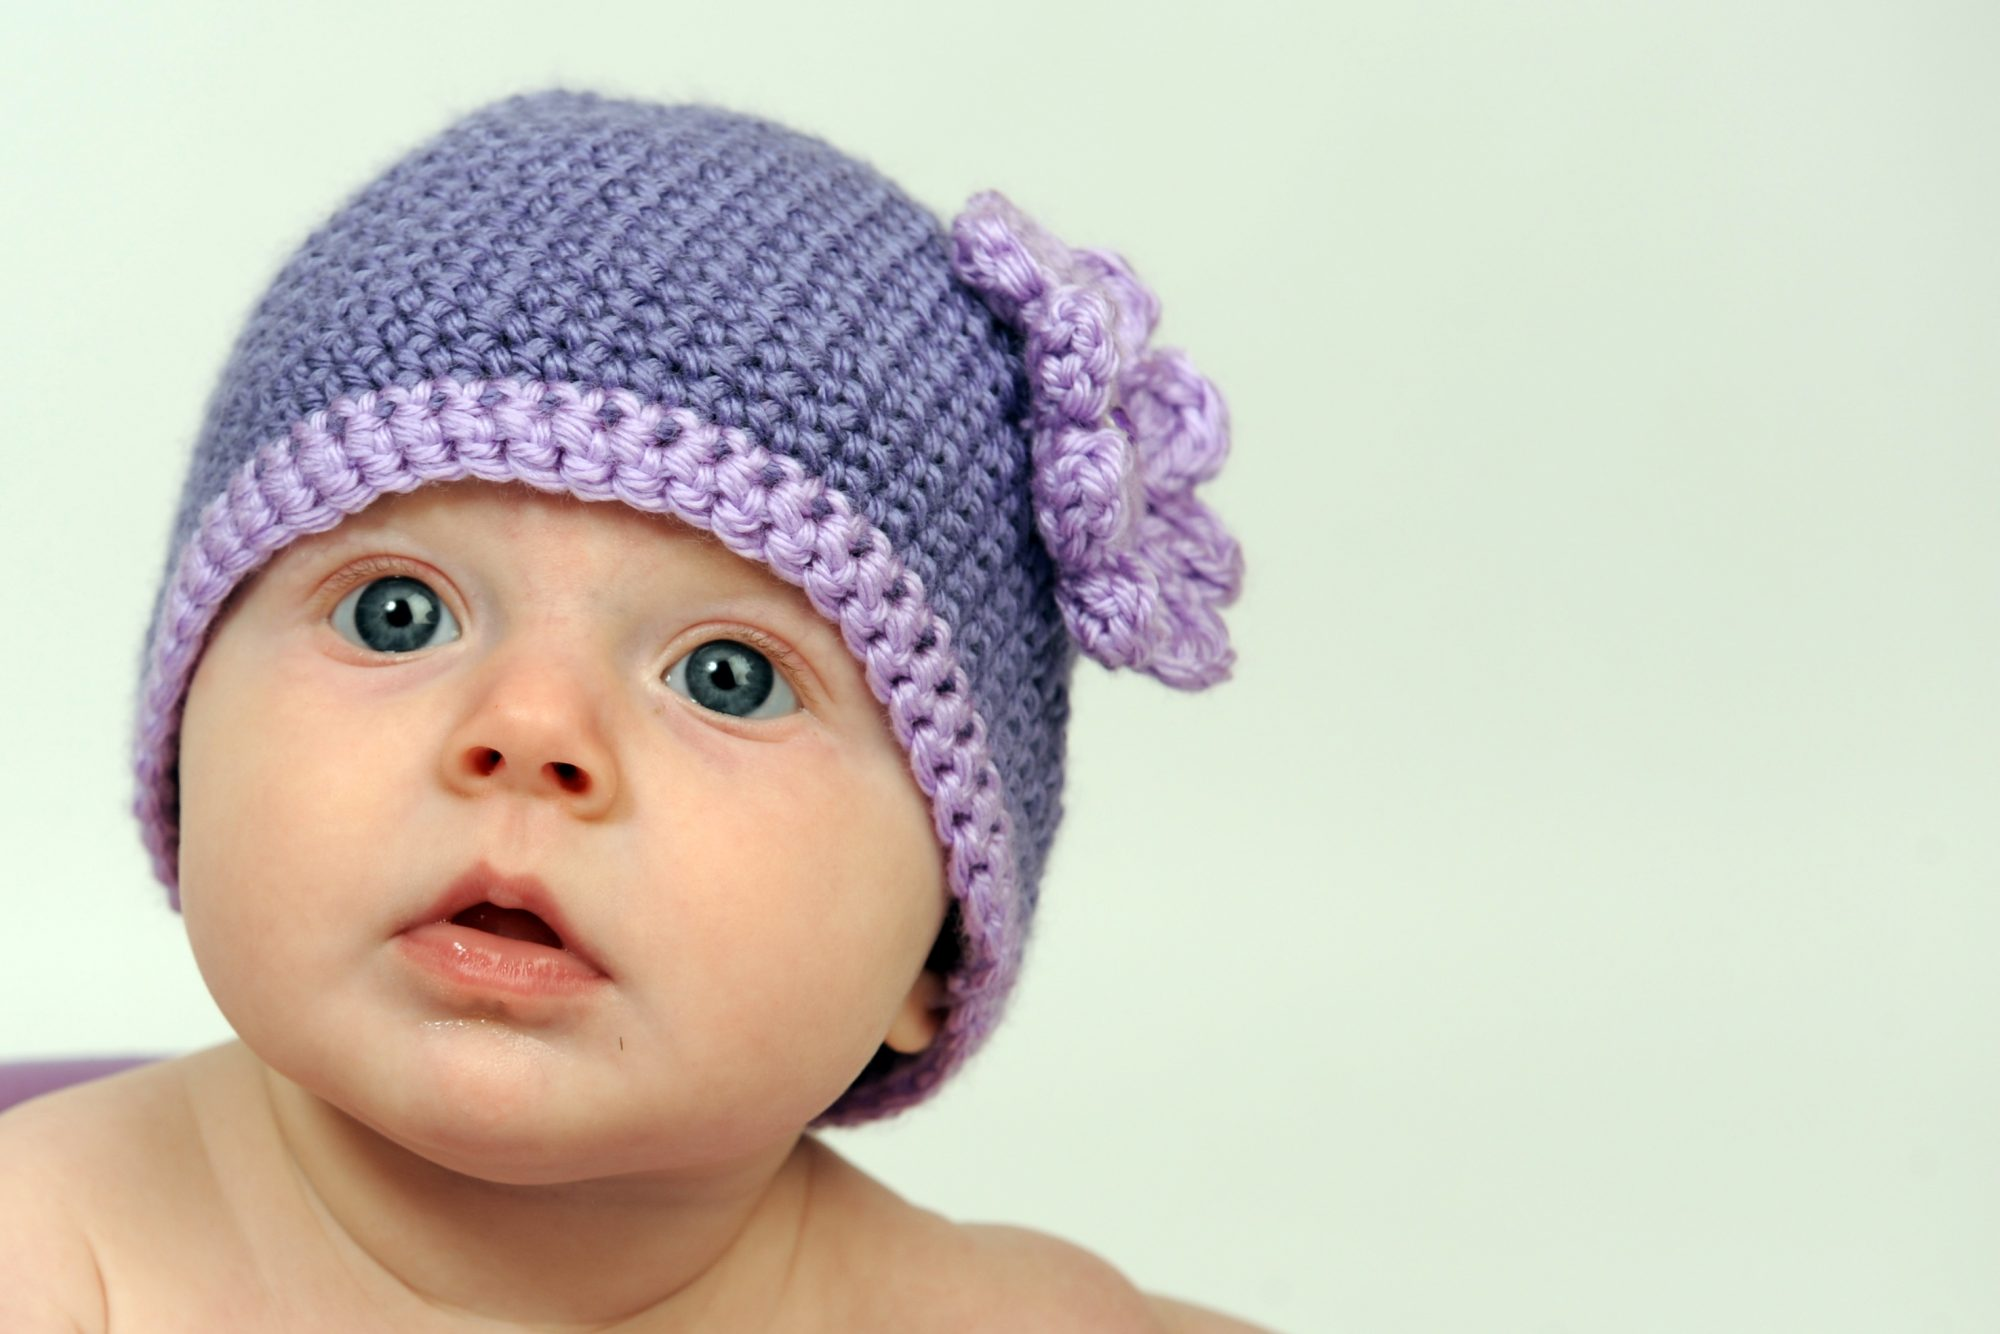 baby wearing purple knit hat